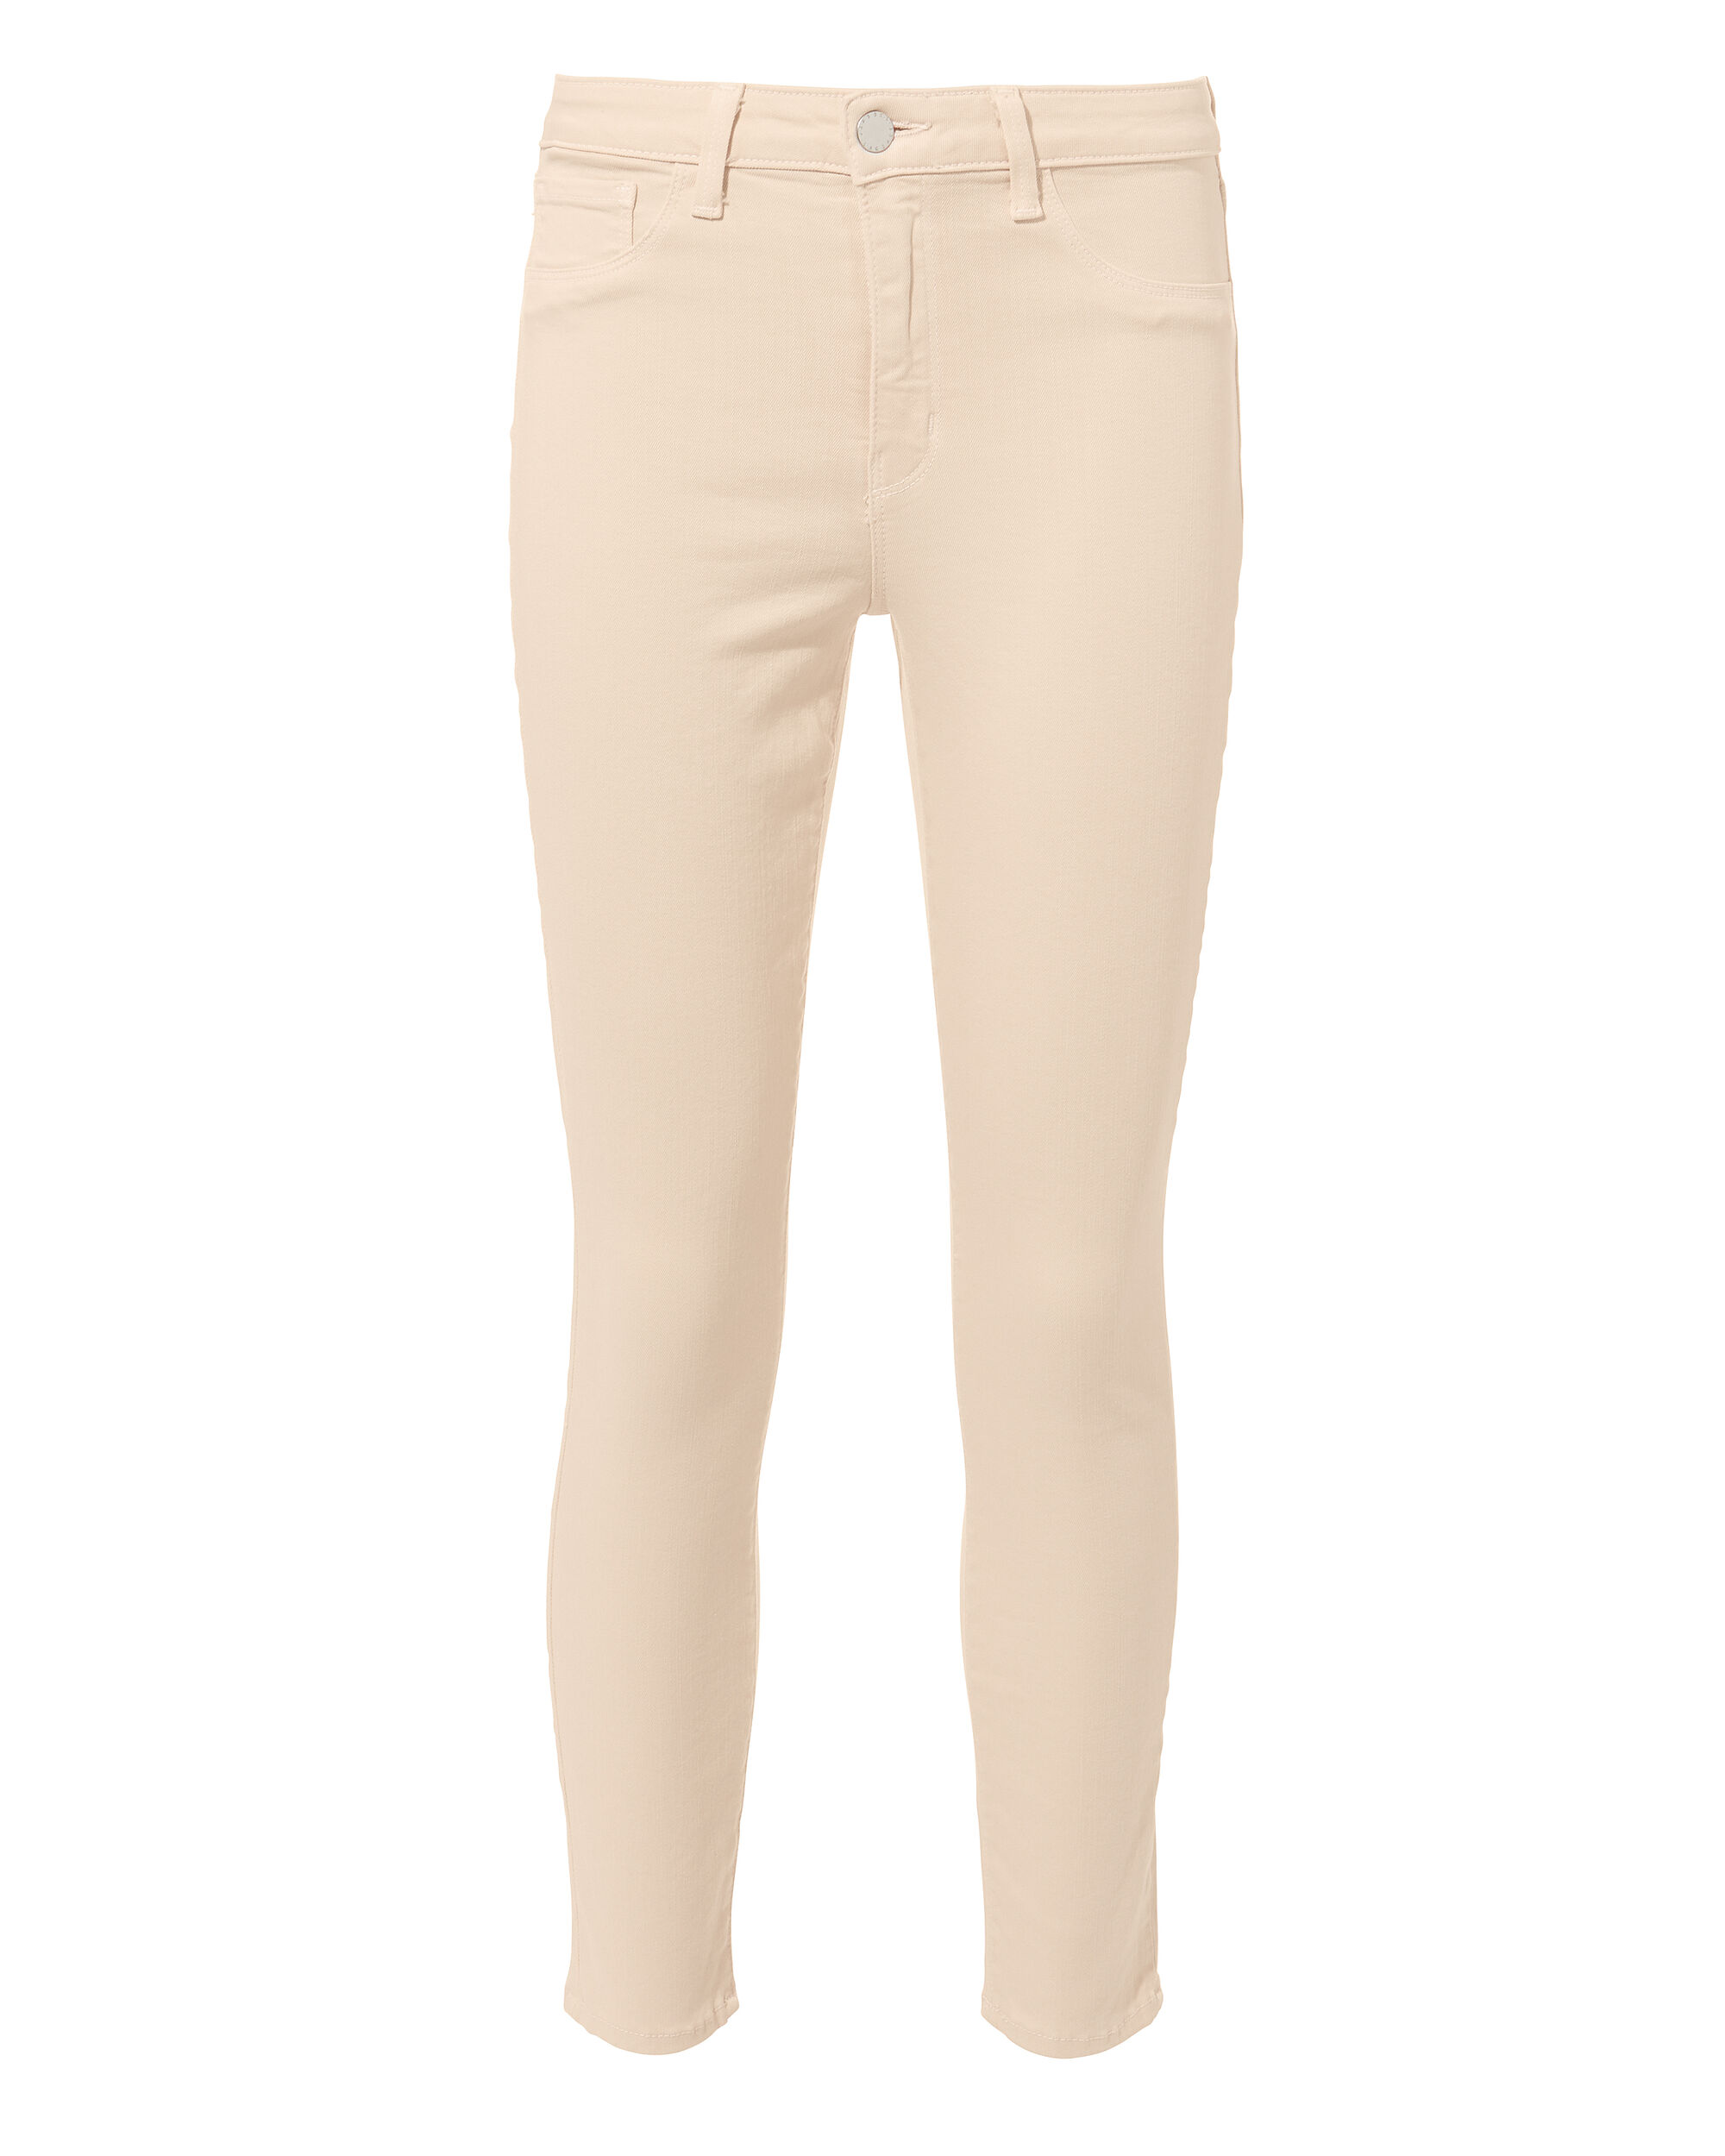 Margot Quartz Skinny Jeans, BLUSH, hi-res